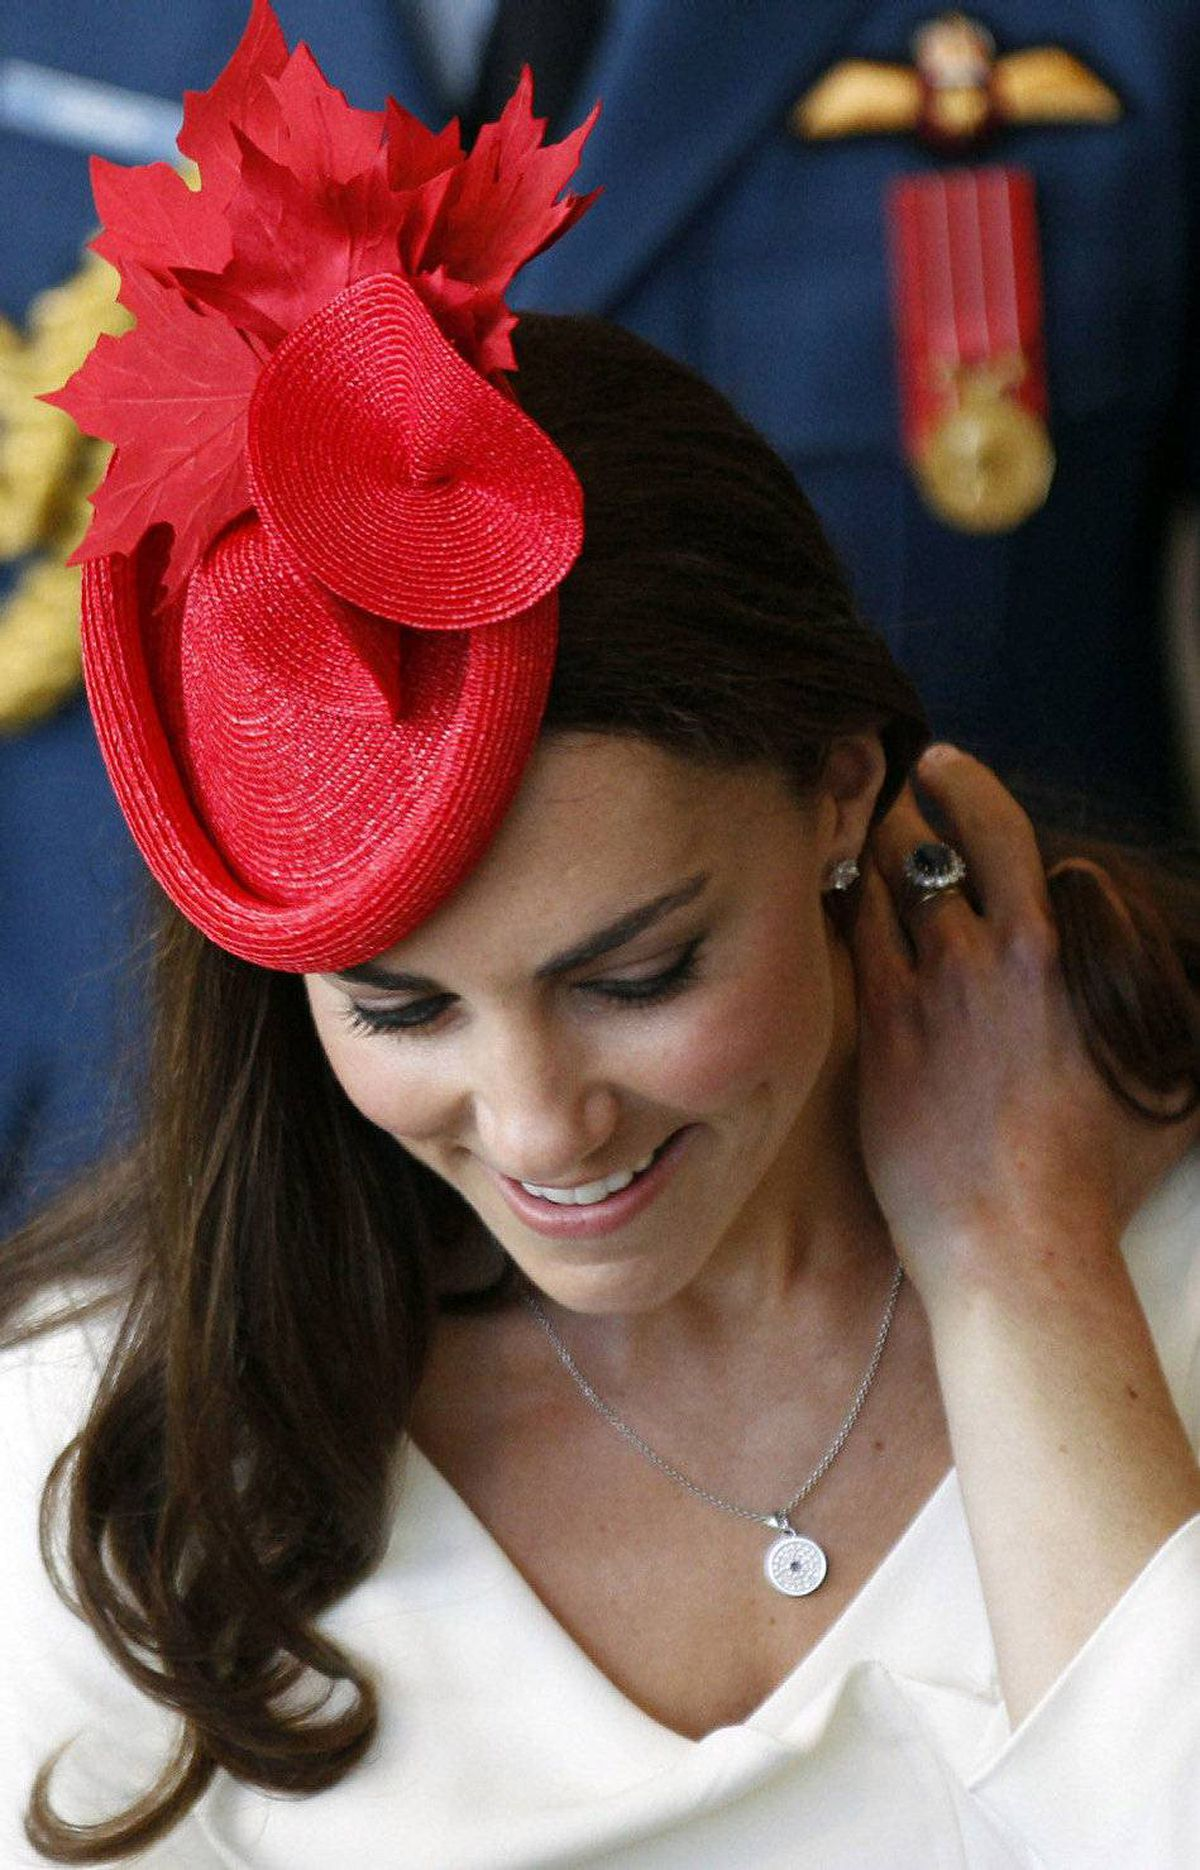 Catherine Middleton, the Duchess of Cambridge smiles following a citizenship ceremony at the Canadian Museum of Civilization in Hull, Quebec near Ottawa July 1, 2011.